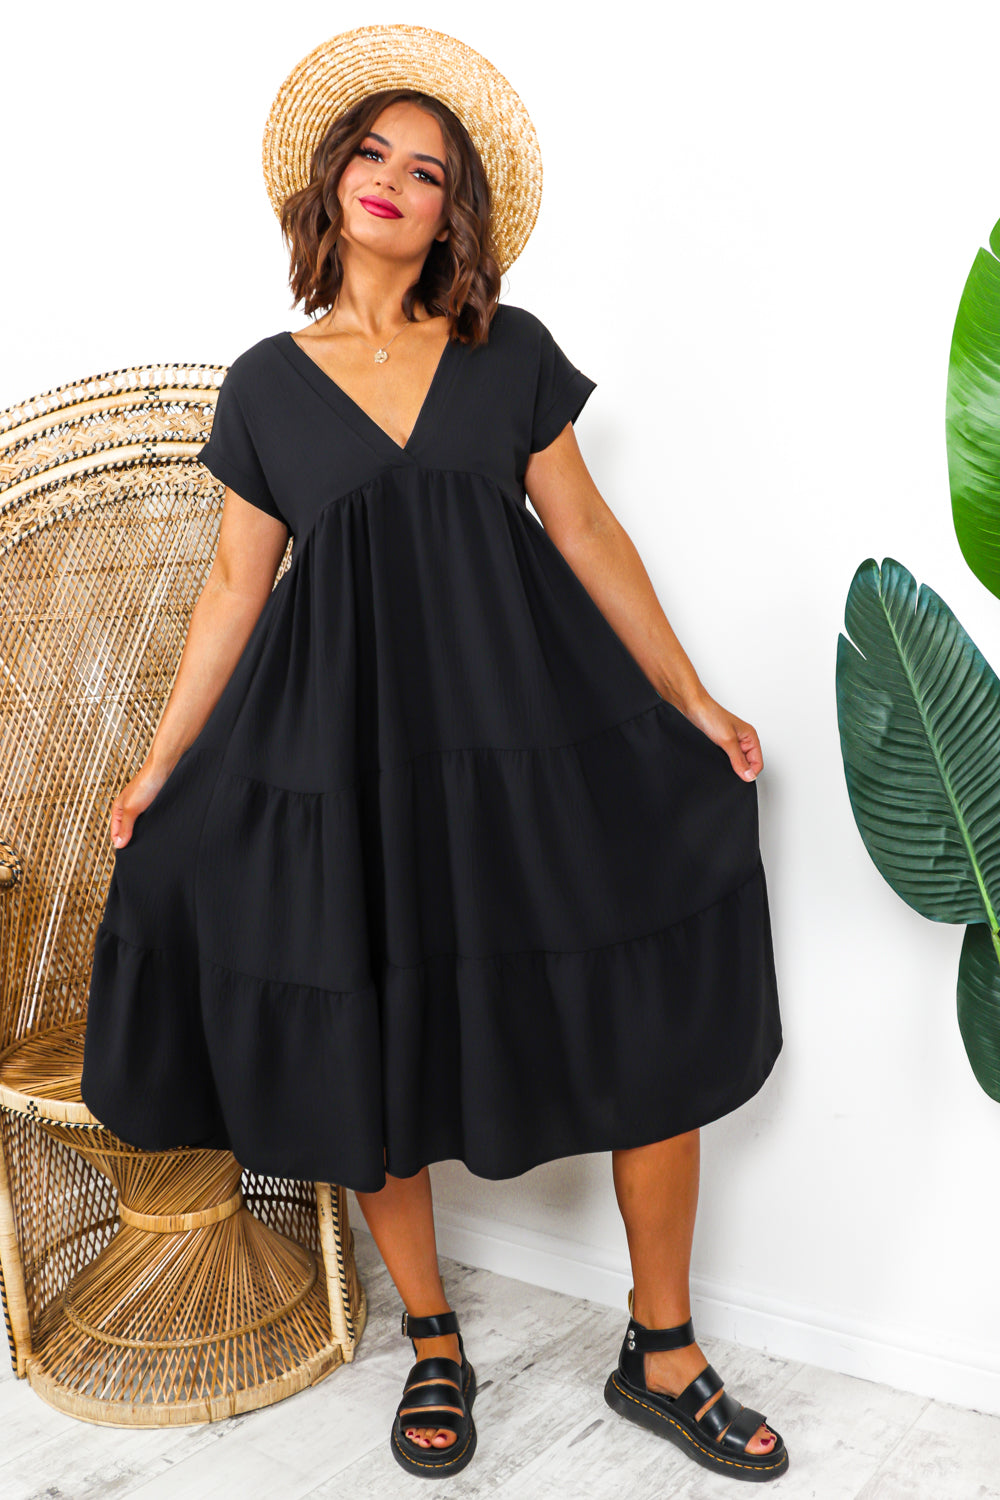 Tier Dress Black- DLSB Womens Fashion